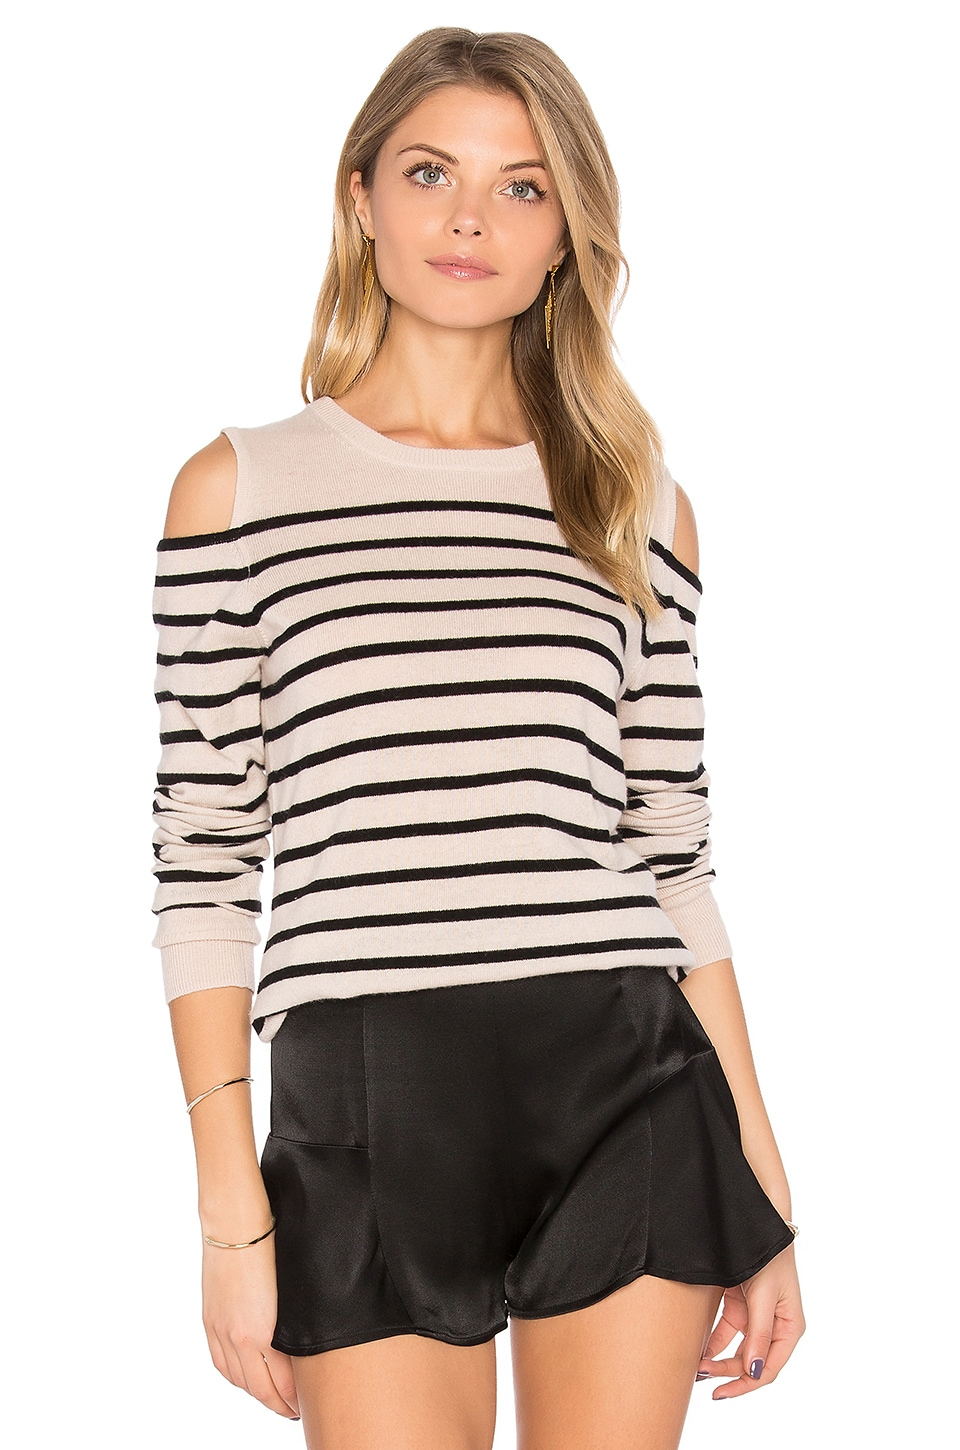 Autumn Cashmere Cold Shoulder Stripe Sweater in Trench & Black